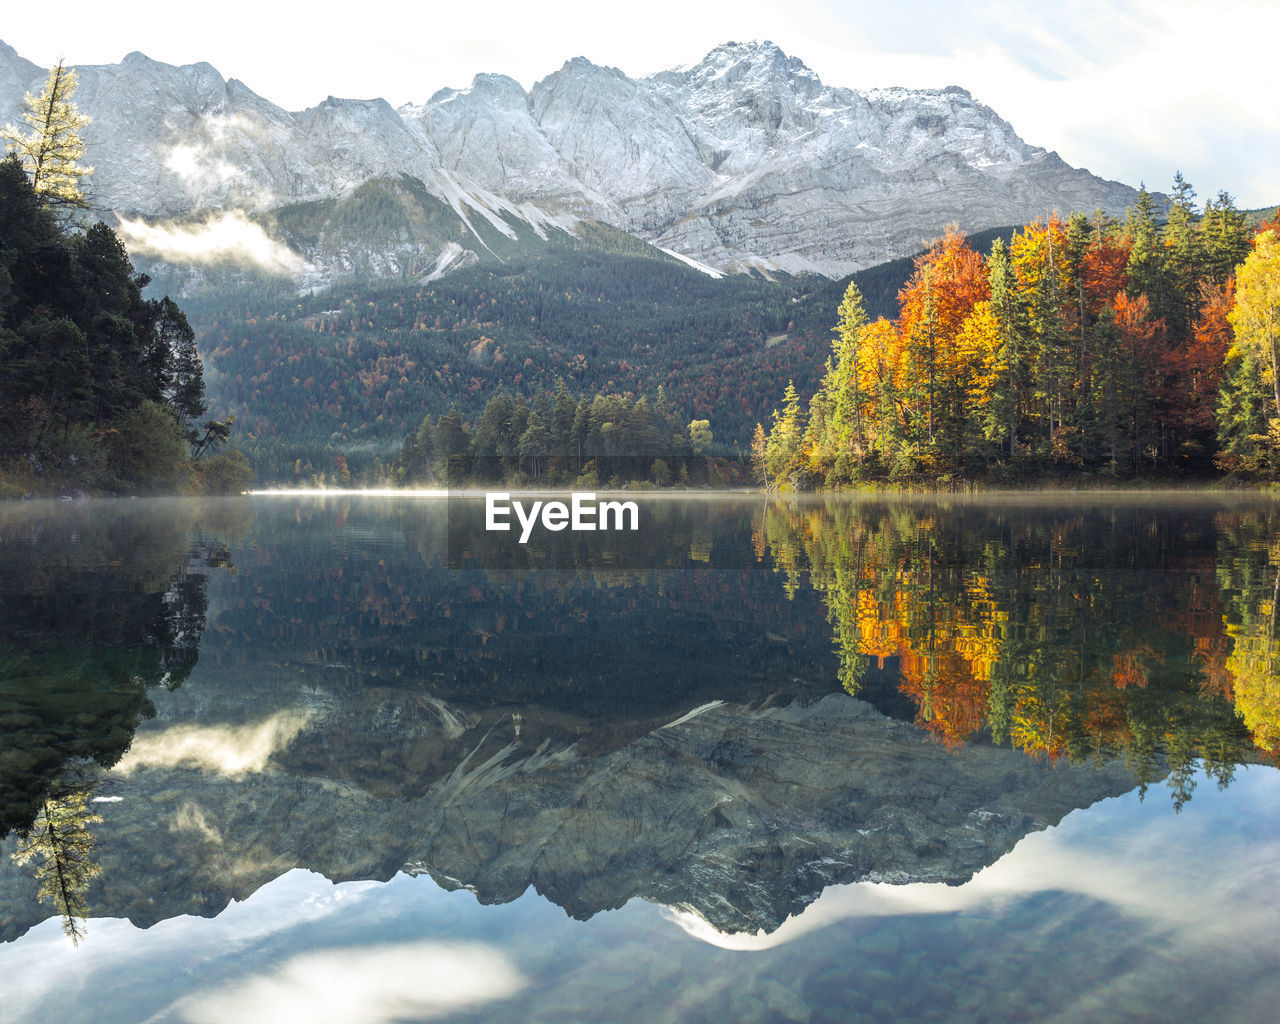 reflection, mountain, nature, beauty in nature, water, scenics, lake, tranquil scene, tranquility, tree, autumn, mountain range, day, waterfront, outdoors, snow, no people, sky, winter